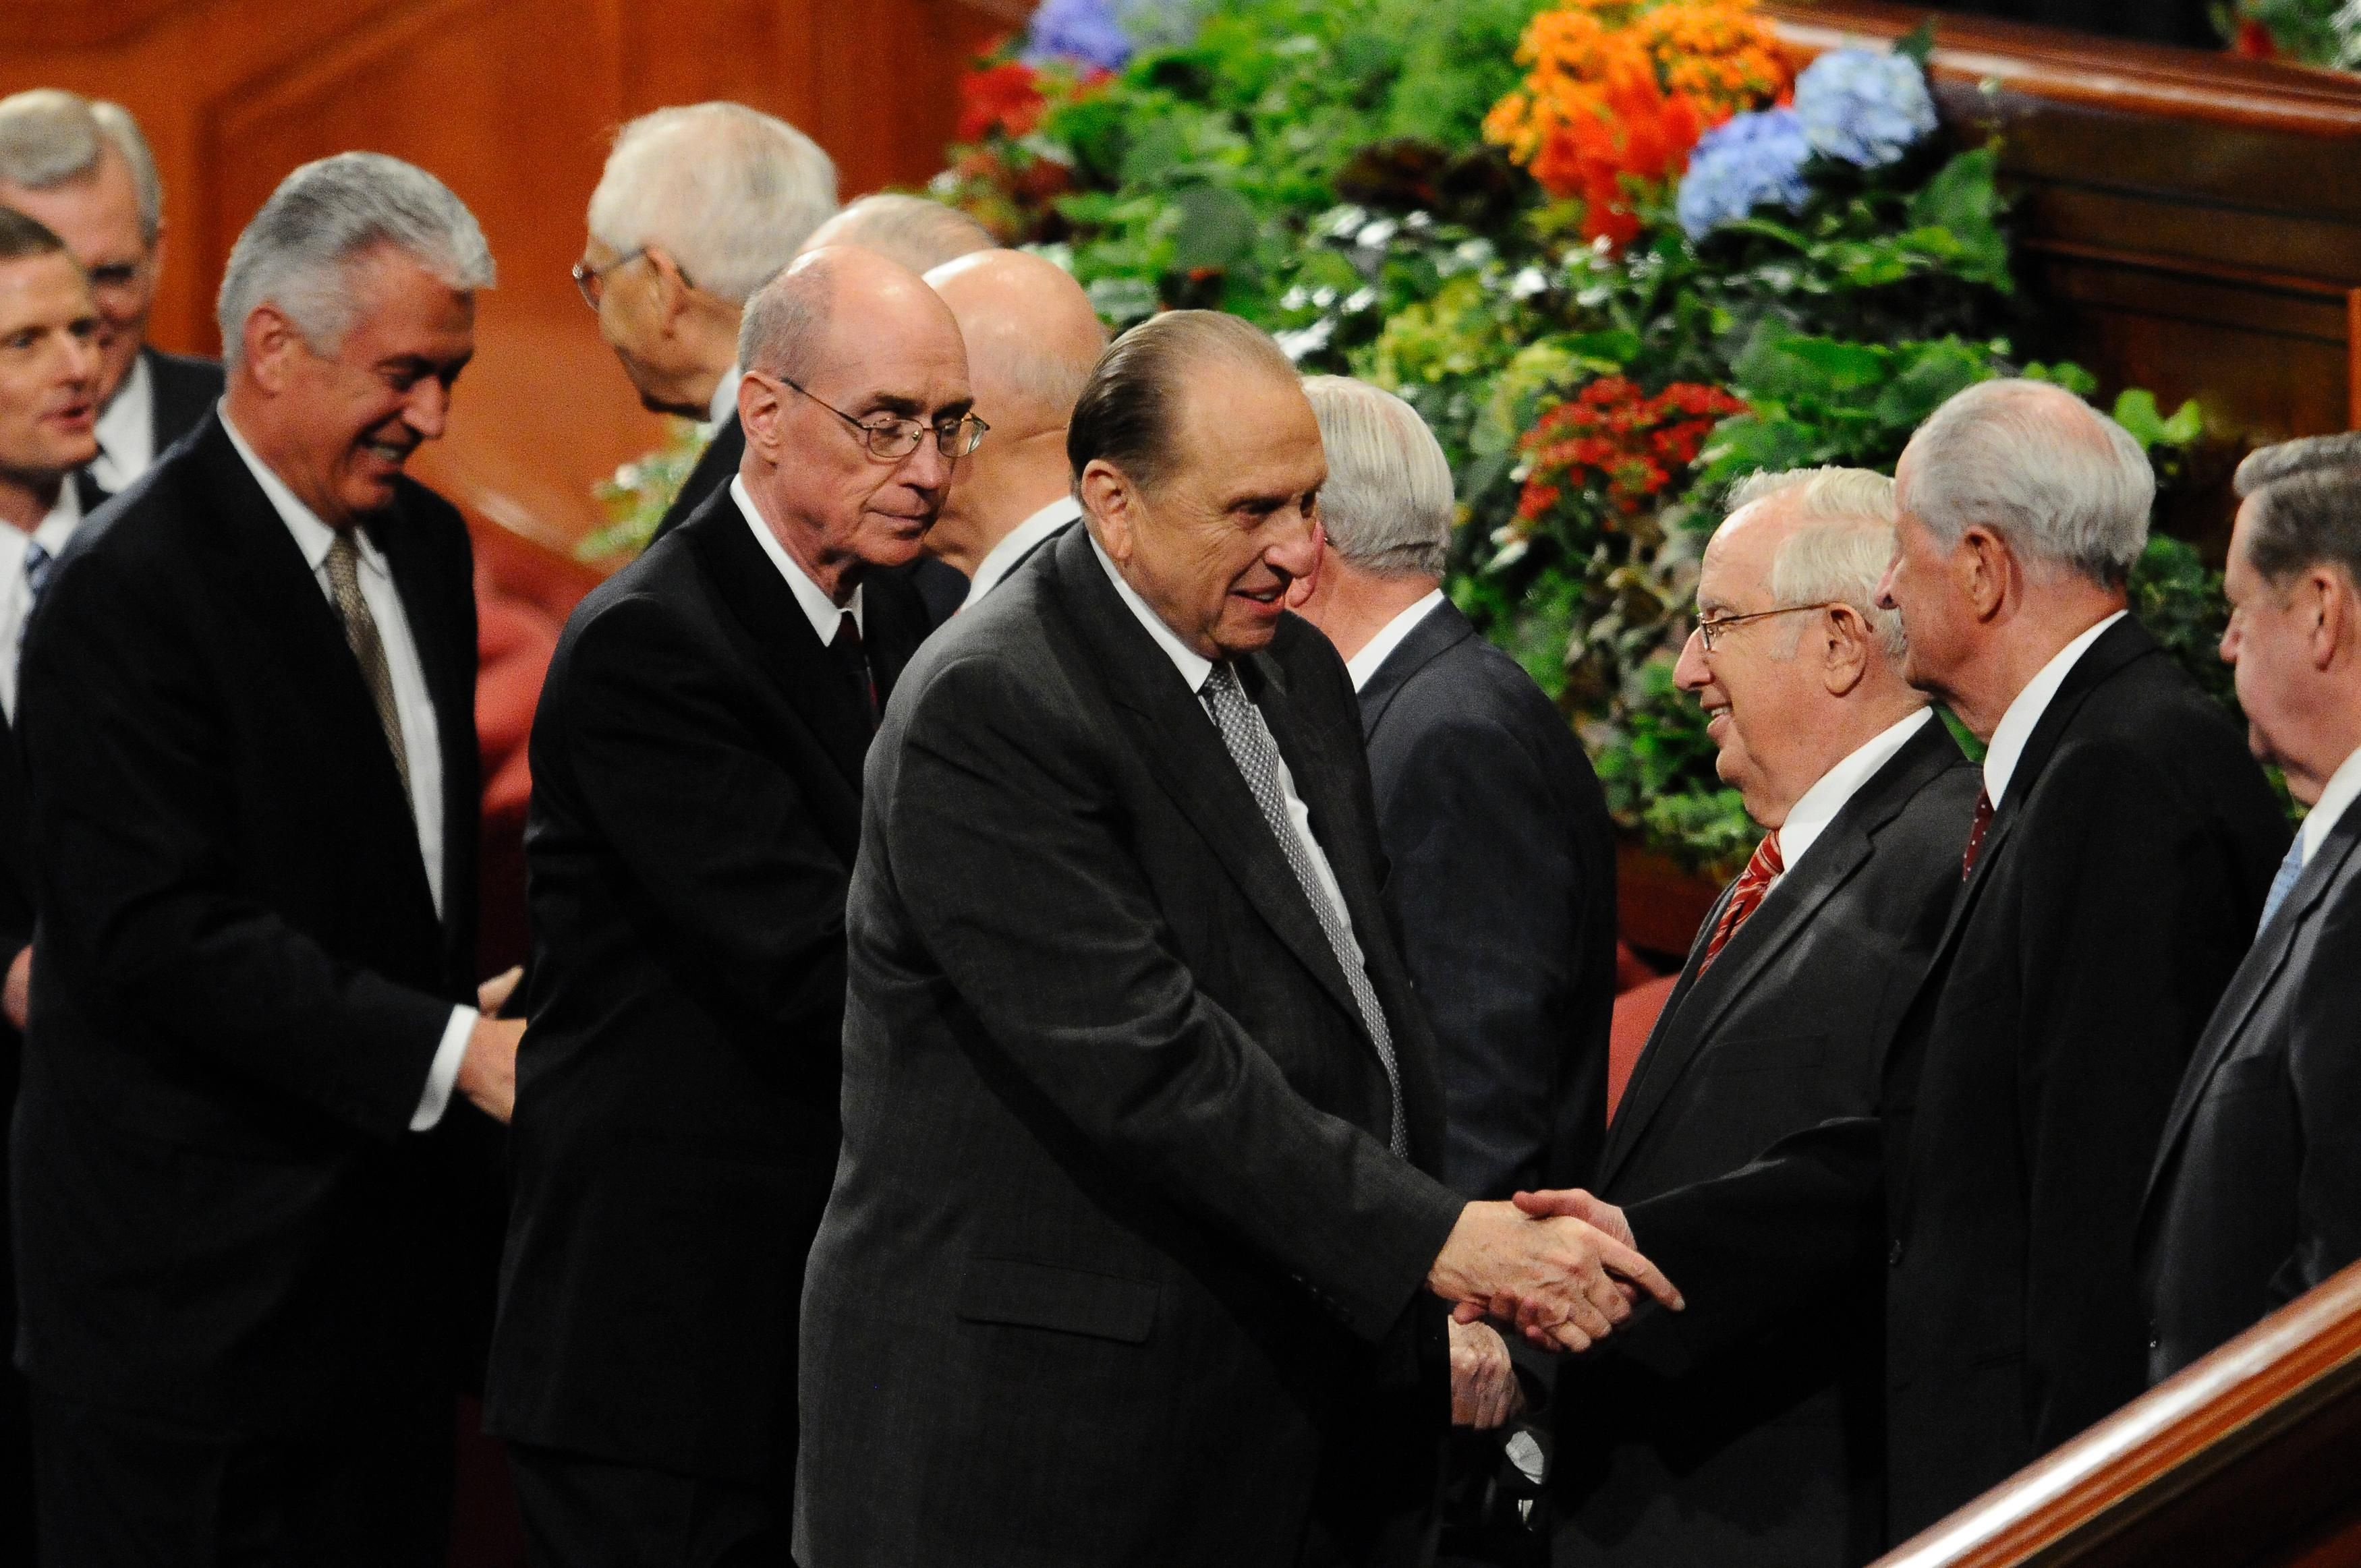 President Thomas S. Monson shakes hands with Elder Robert D. Hales after a session of general conference in October 2010. (Photo: MormonNewsroom.org)<p></p>